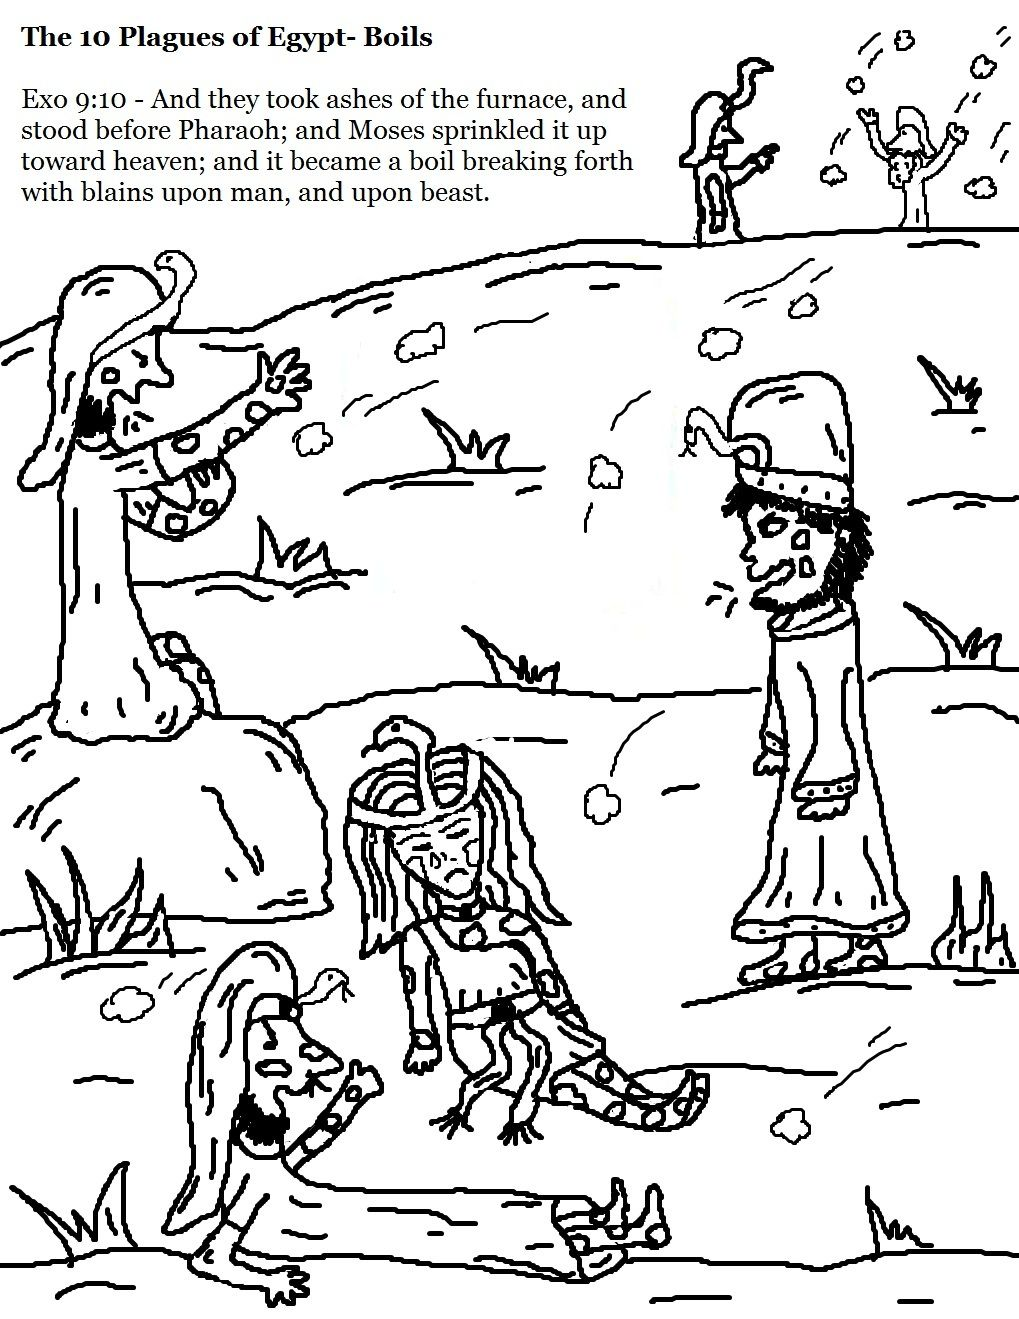 Coloring pages moses and ten commandments - The 10 Plagues Of Egypt Boils Coloring Pages Jpg 1019 1319